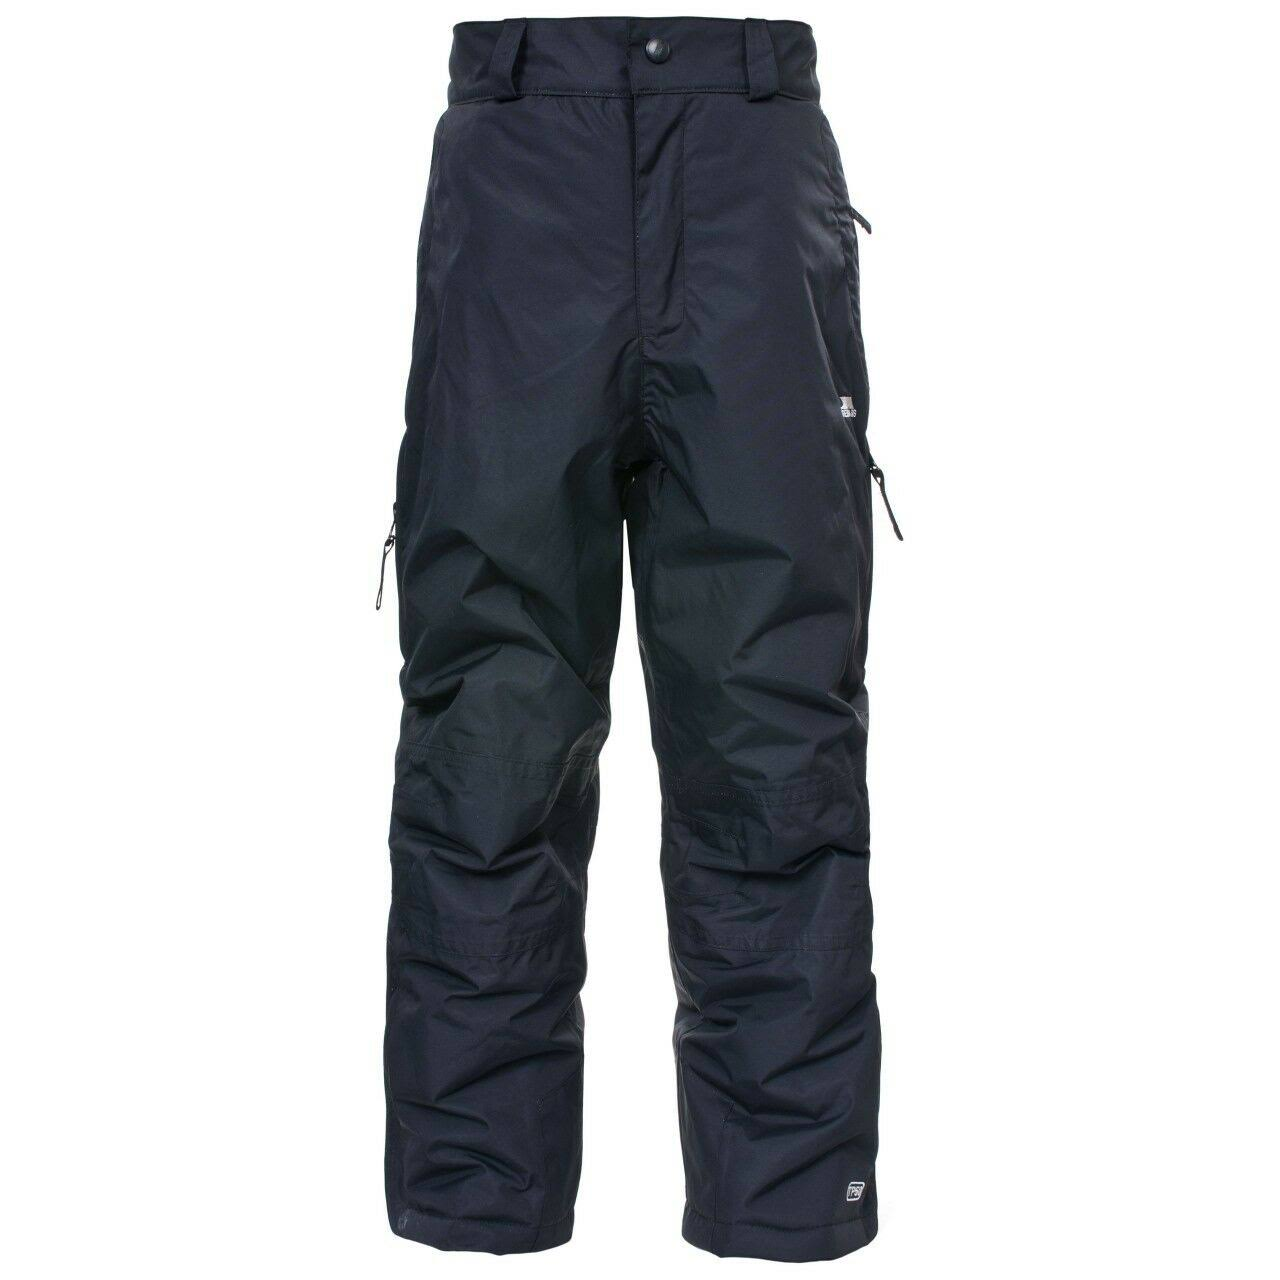 Trespass Marvelous Kids Ski Pants - Black, Size 5-6